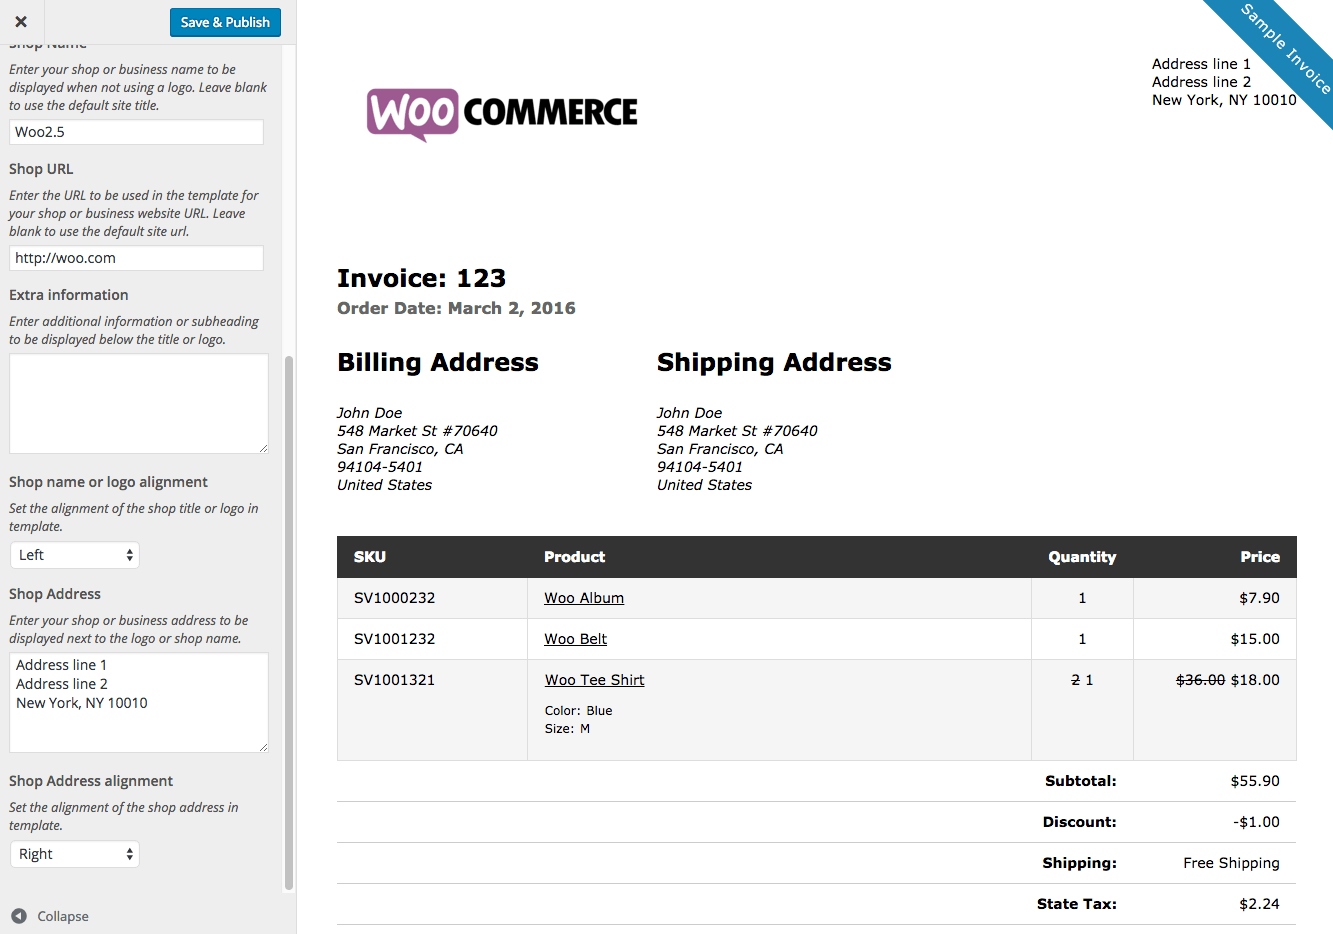 Opposenewapstandardsus  Inspiring Print Invoices Amp Packing Lists  Woocommerce With Exquisite Woocommerce Print Invoices  Packing Lists Customizer With Nice Template For Invoicing Also Accounting And Invoicing Software For Small Business In Addition Standard Invoice Template Free And Free Invoice Format As Well As Template Proforma Invoice Additionally Invoice Packing List From Woocommercecom With Opposenewapstandardsus  Exquisite Print Invoices Amp Packing Lists  Woocommerce With Nice Woocommerce Print Invoices  Packing Lists Customizer And Inspiring Template For Invoicing Also Accounting And Invoicing Software For Small Business In Addition Standard Invoice Template Free From Woocommercecom